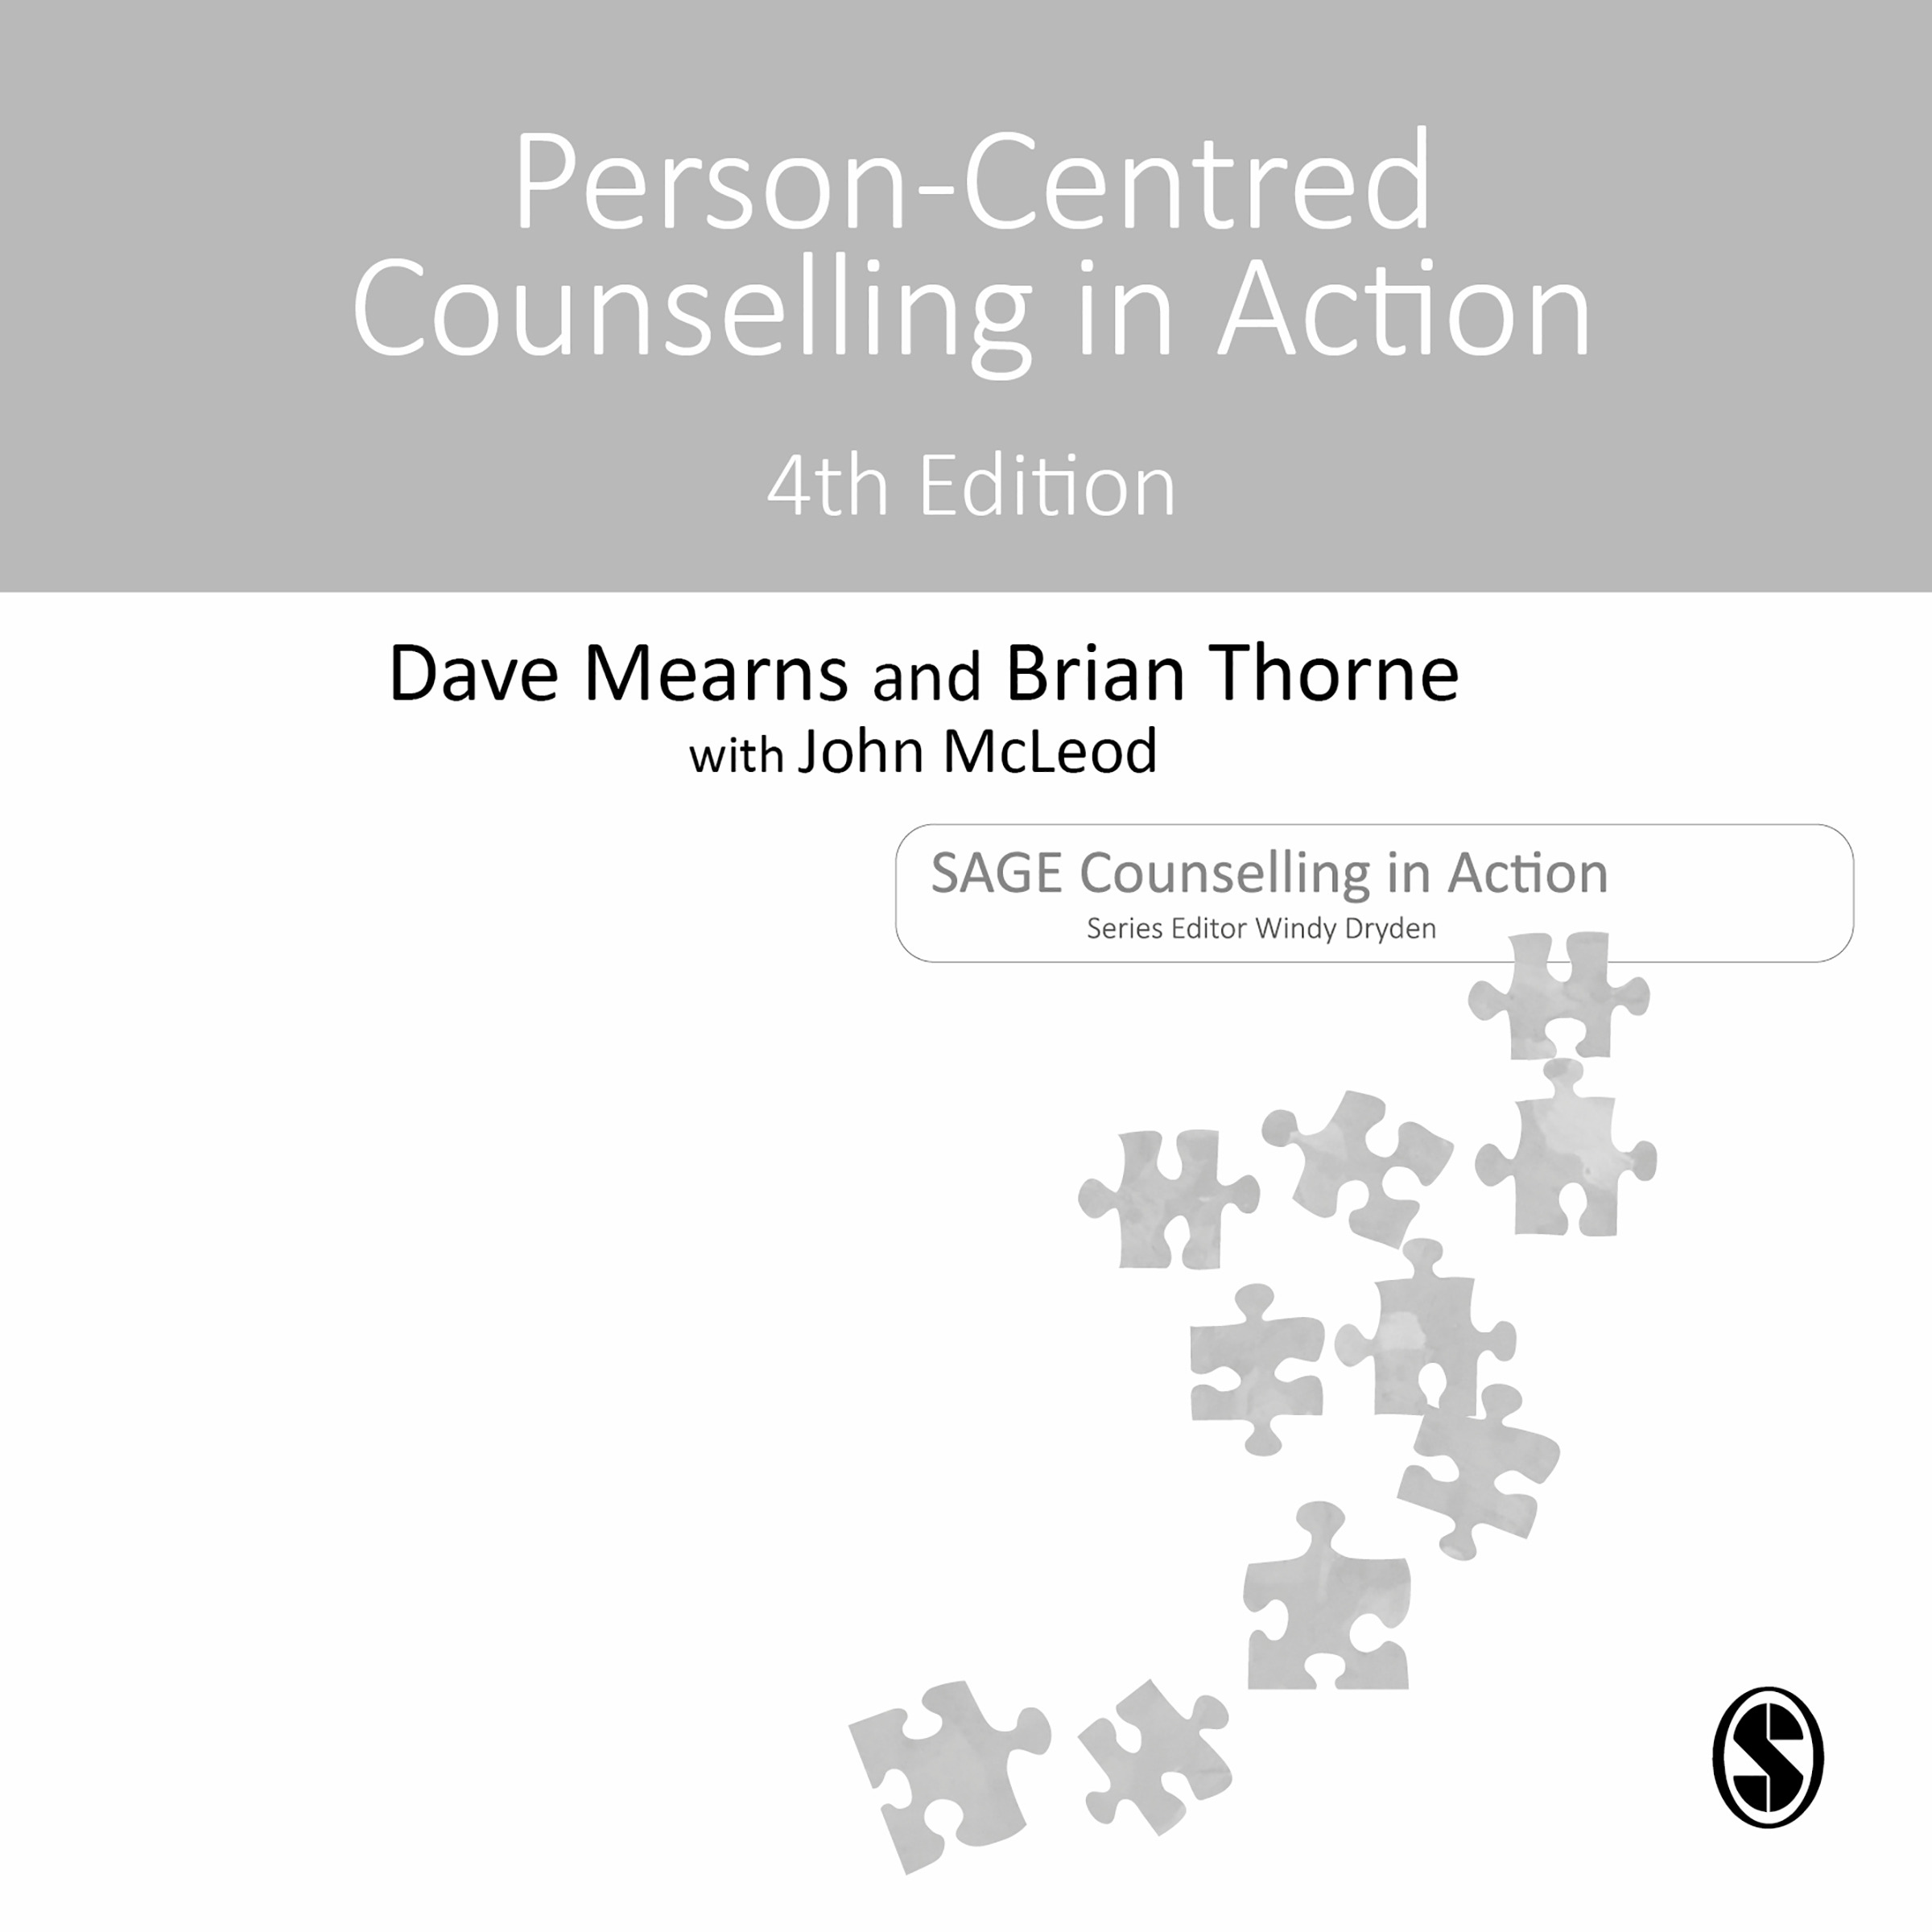 Person-Centred Counselling in Action image